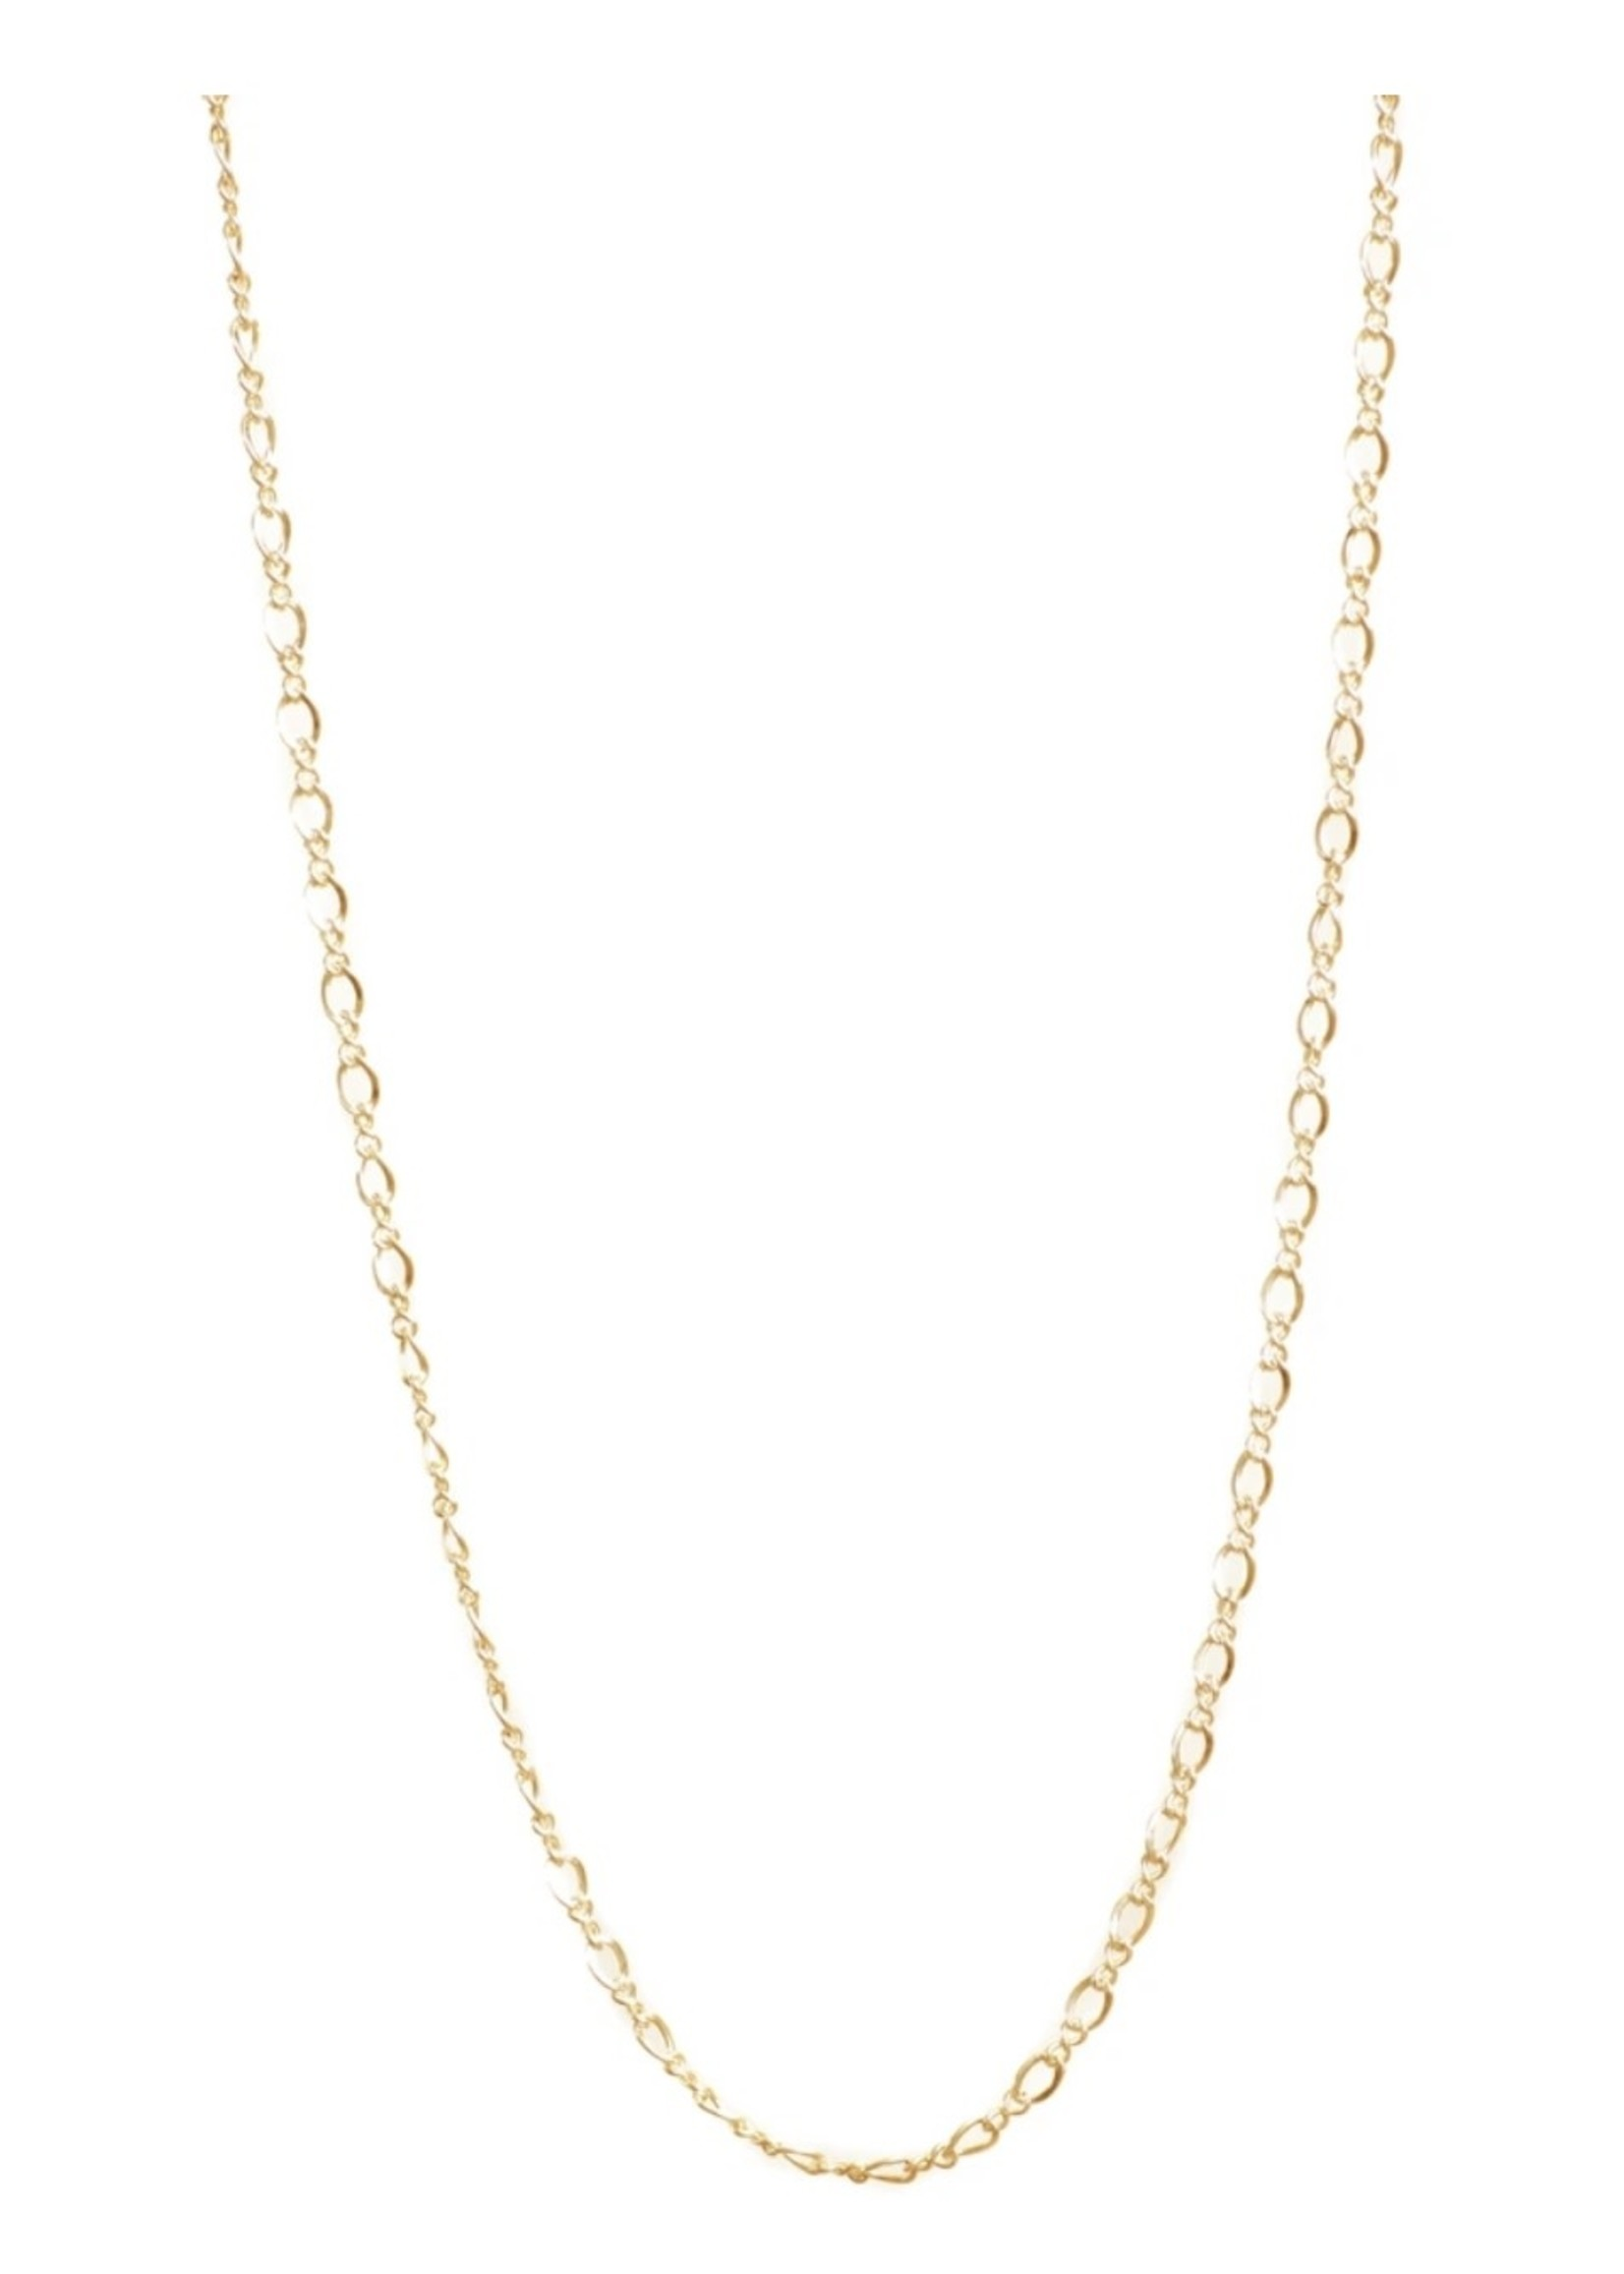 Lisbeth Daisy Chain, 14K Gold Filled